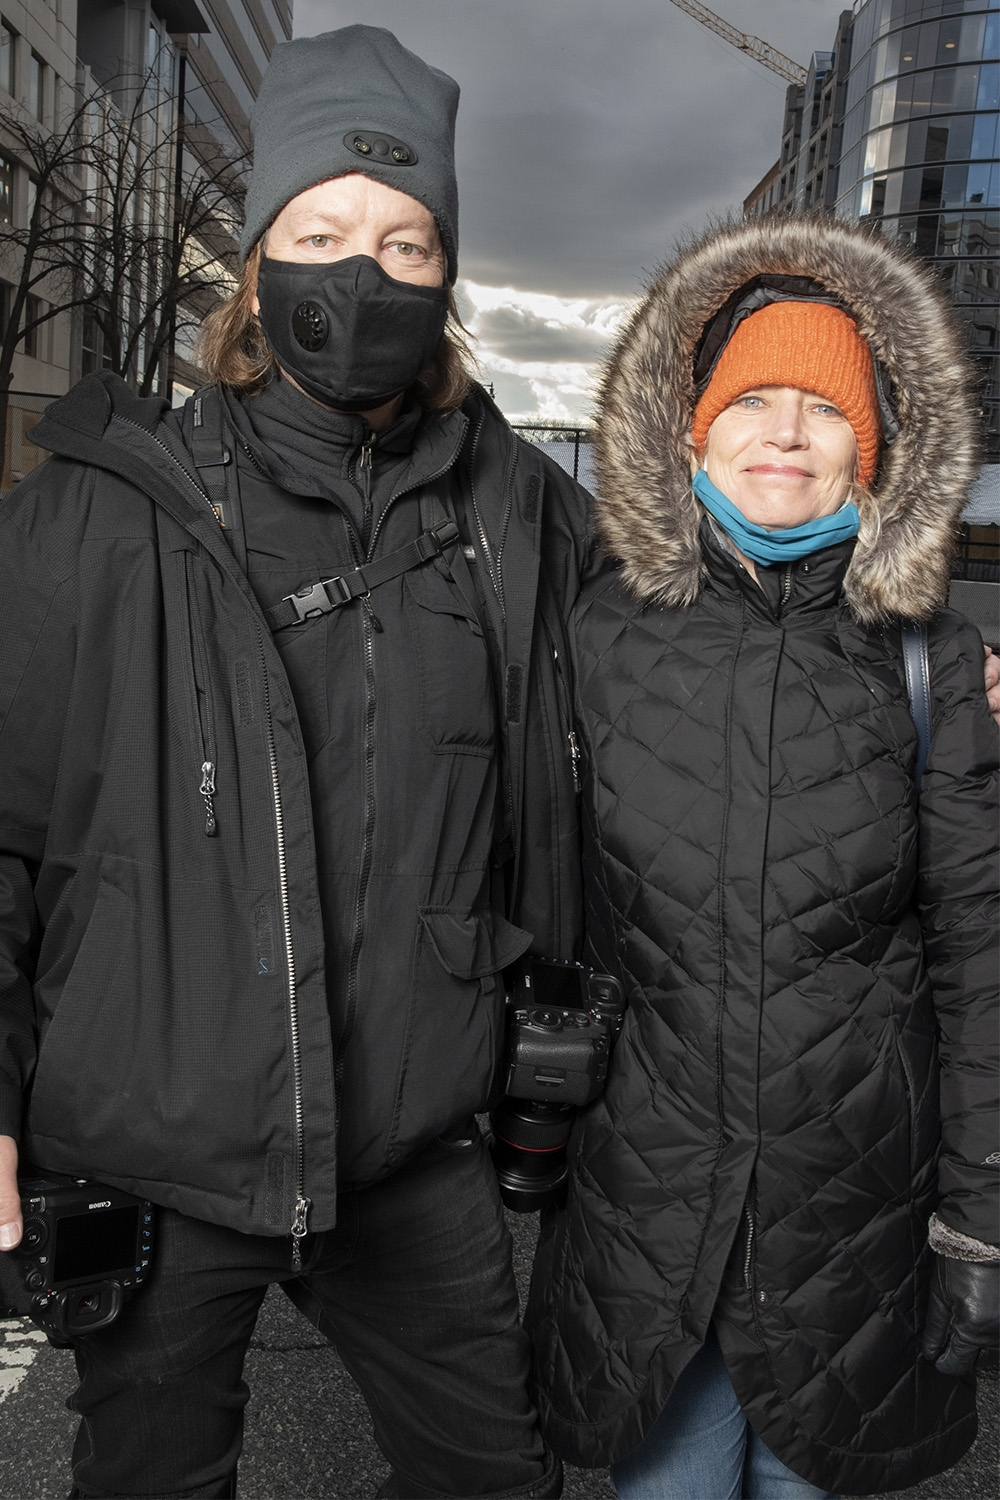 A man wearing a black jacket, black pants, a black face mask and a grey winter hat stands with his arm around a woman. Professional camera are slung over each of the man's shoulders. The woman, who is smiling, wears a black jacket with a fur-lined hood around her head, an orange winter hat, a black jacket, and black gloves, and she has a teal face mask tucked under her chin.